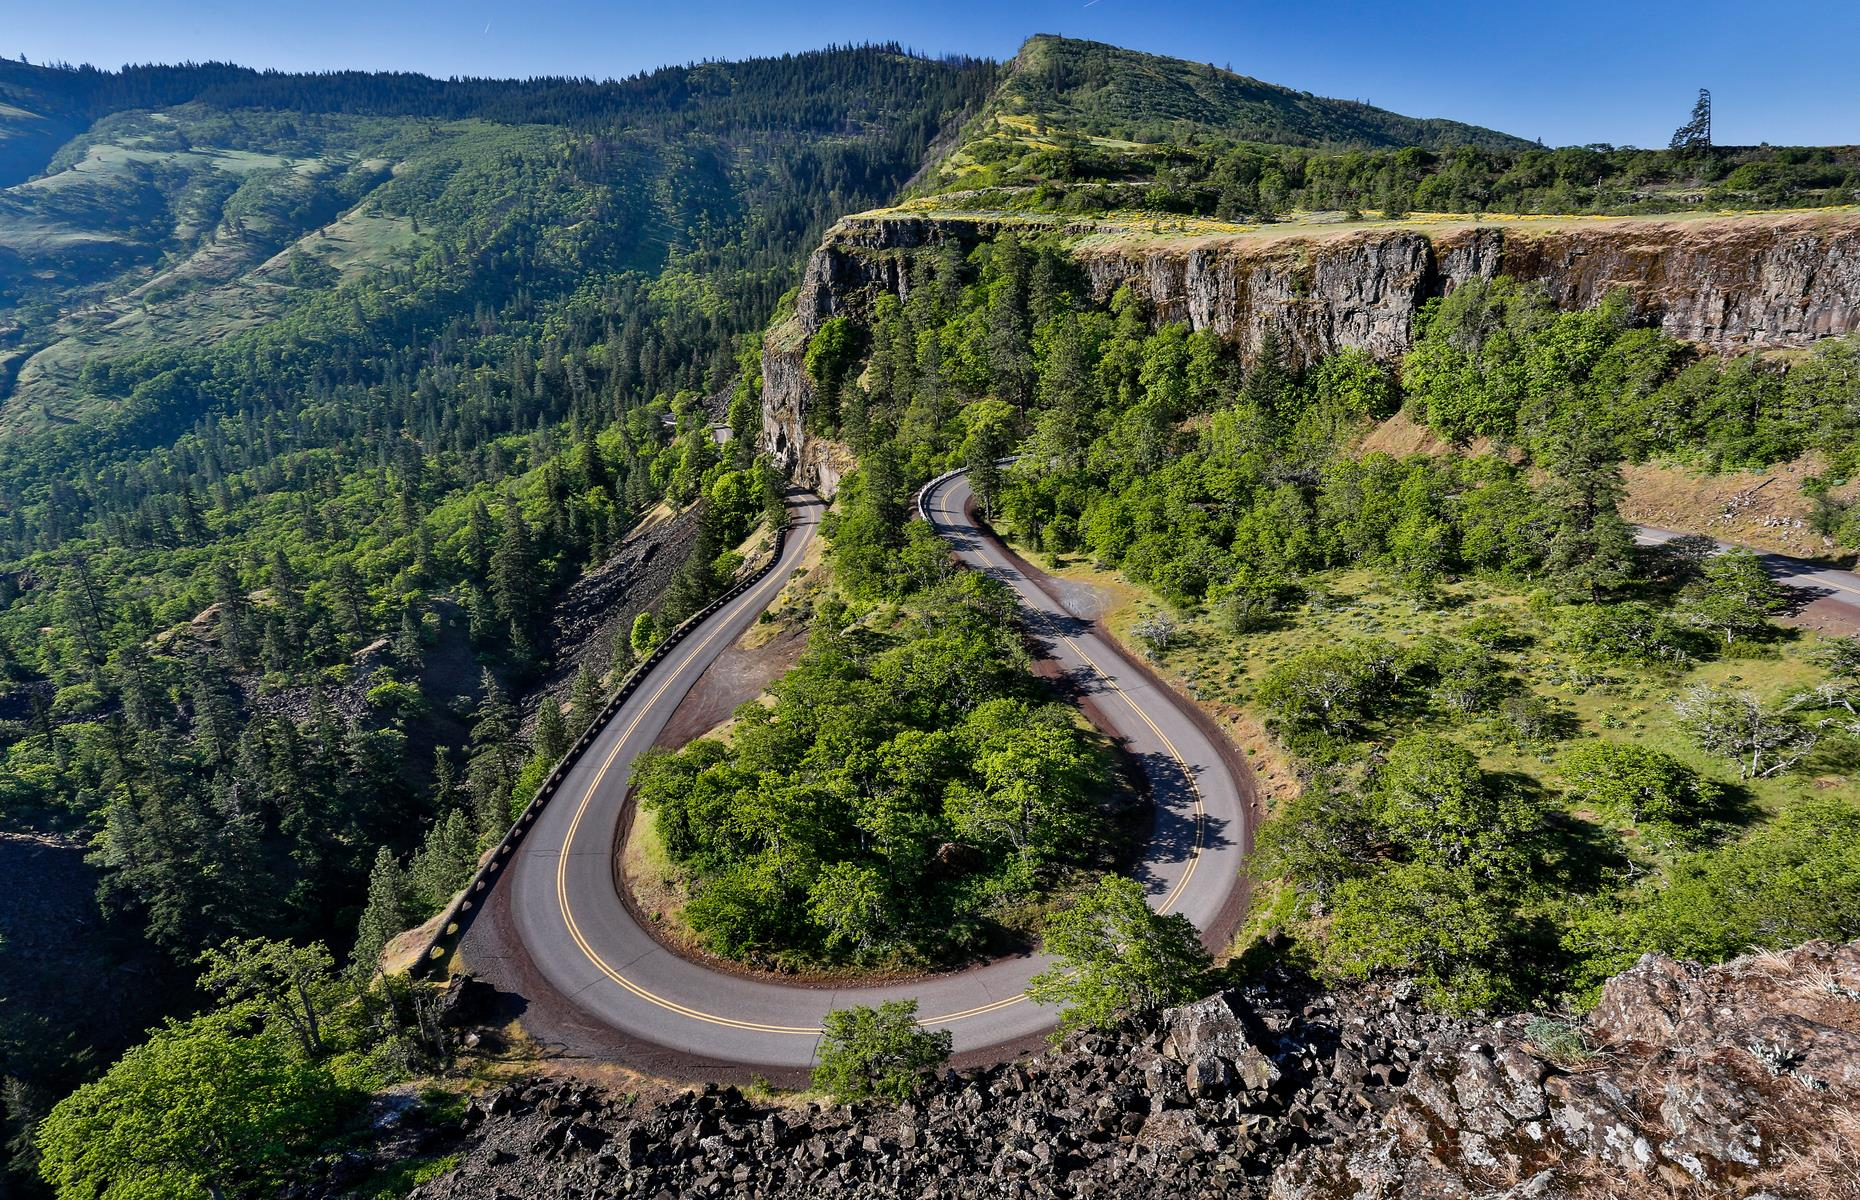 "Slide 23 of 31: Nicknamed ""King of Roads"", this designated National Historic Landmark runs along the vertiginous walls of the Columbia River Gorge for 70 breathtaking miles (113km). There are several scenic overlooks along the route, with the Portland Women's Forum State Scenic Viewpoint among the most popular thanks to vistas of basalt cliffs plunging into the river. Now discover the most beautiful weekend road trip in every state."